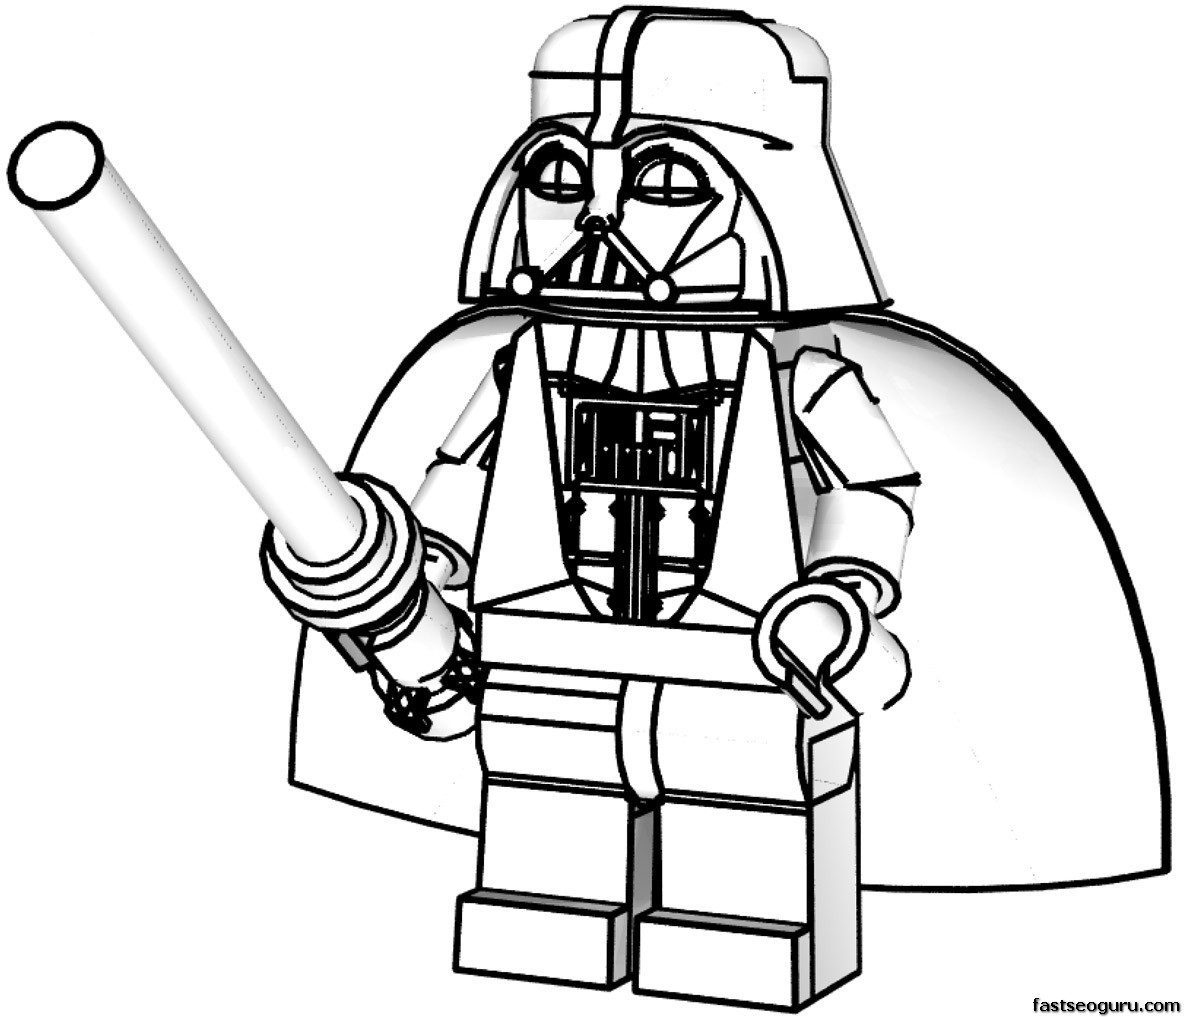 coloring lego star wars lego star wars coloring pages to download and print for free wars star coloring lego